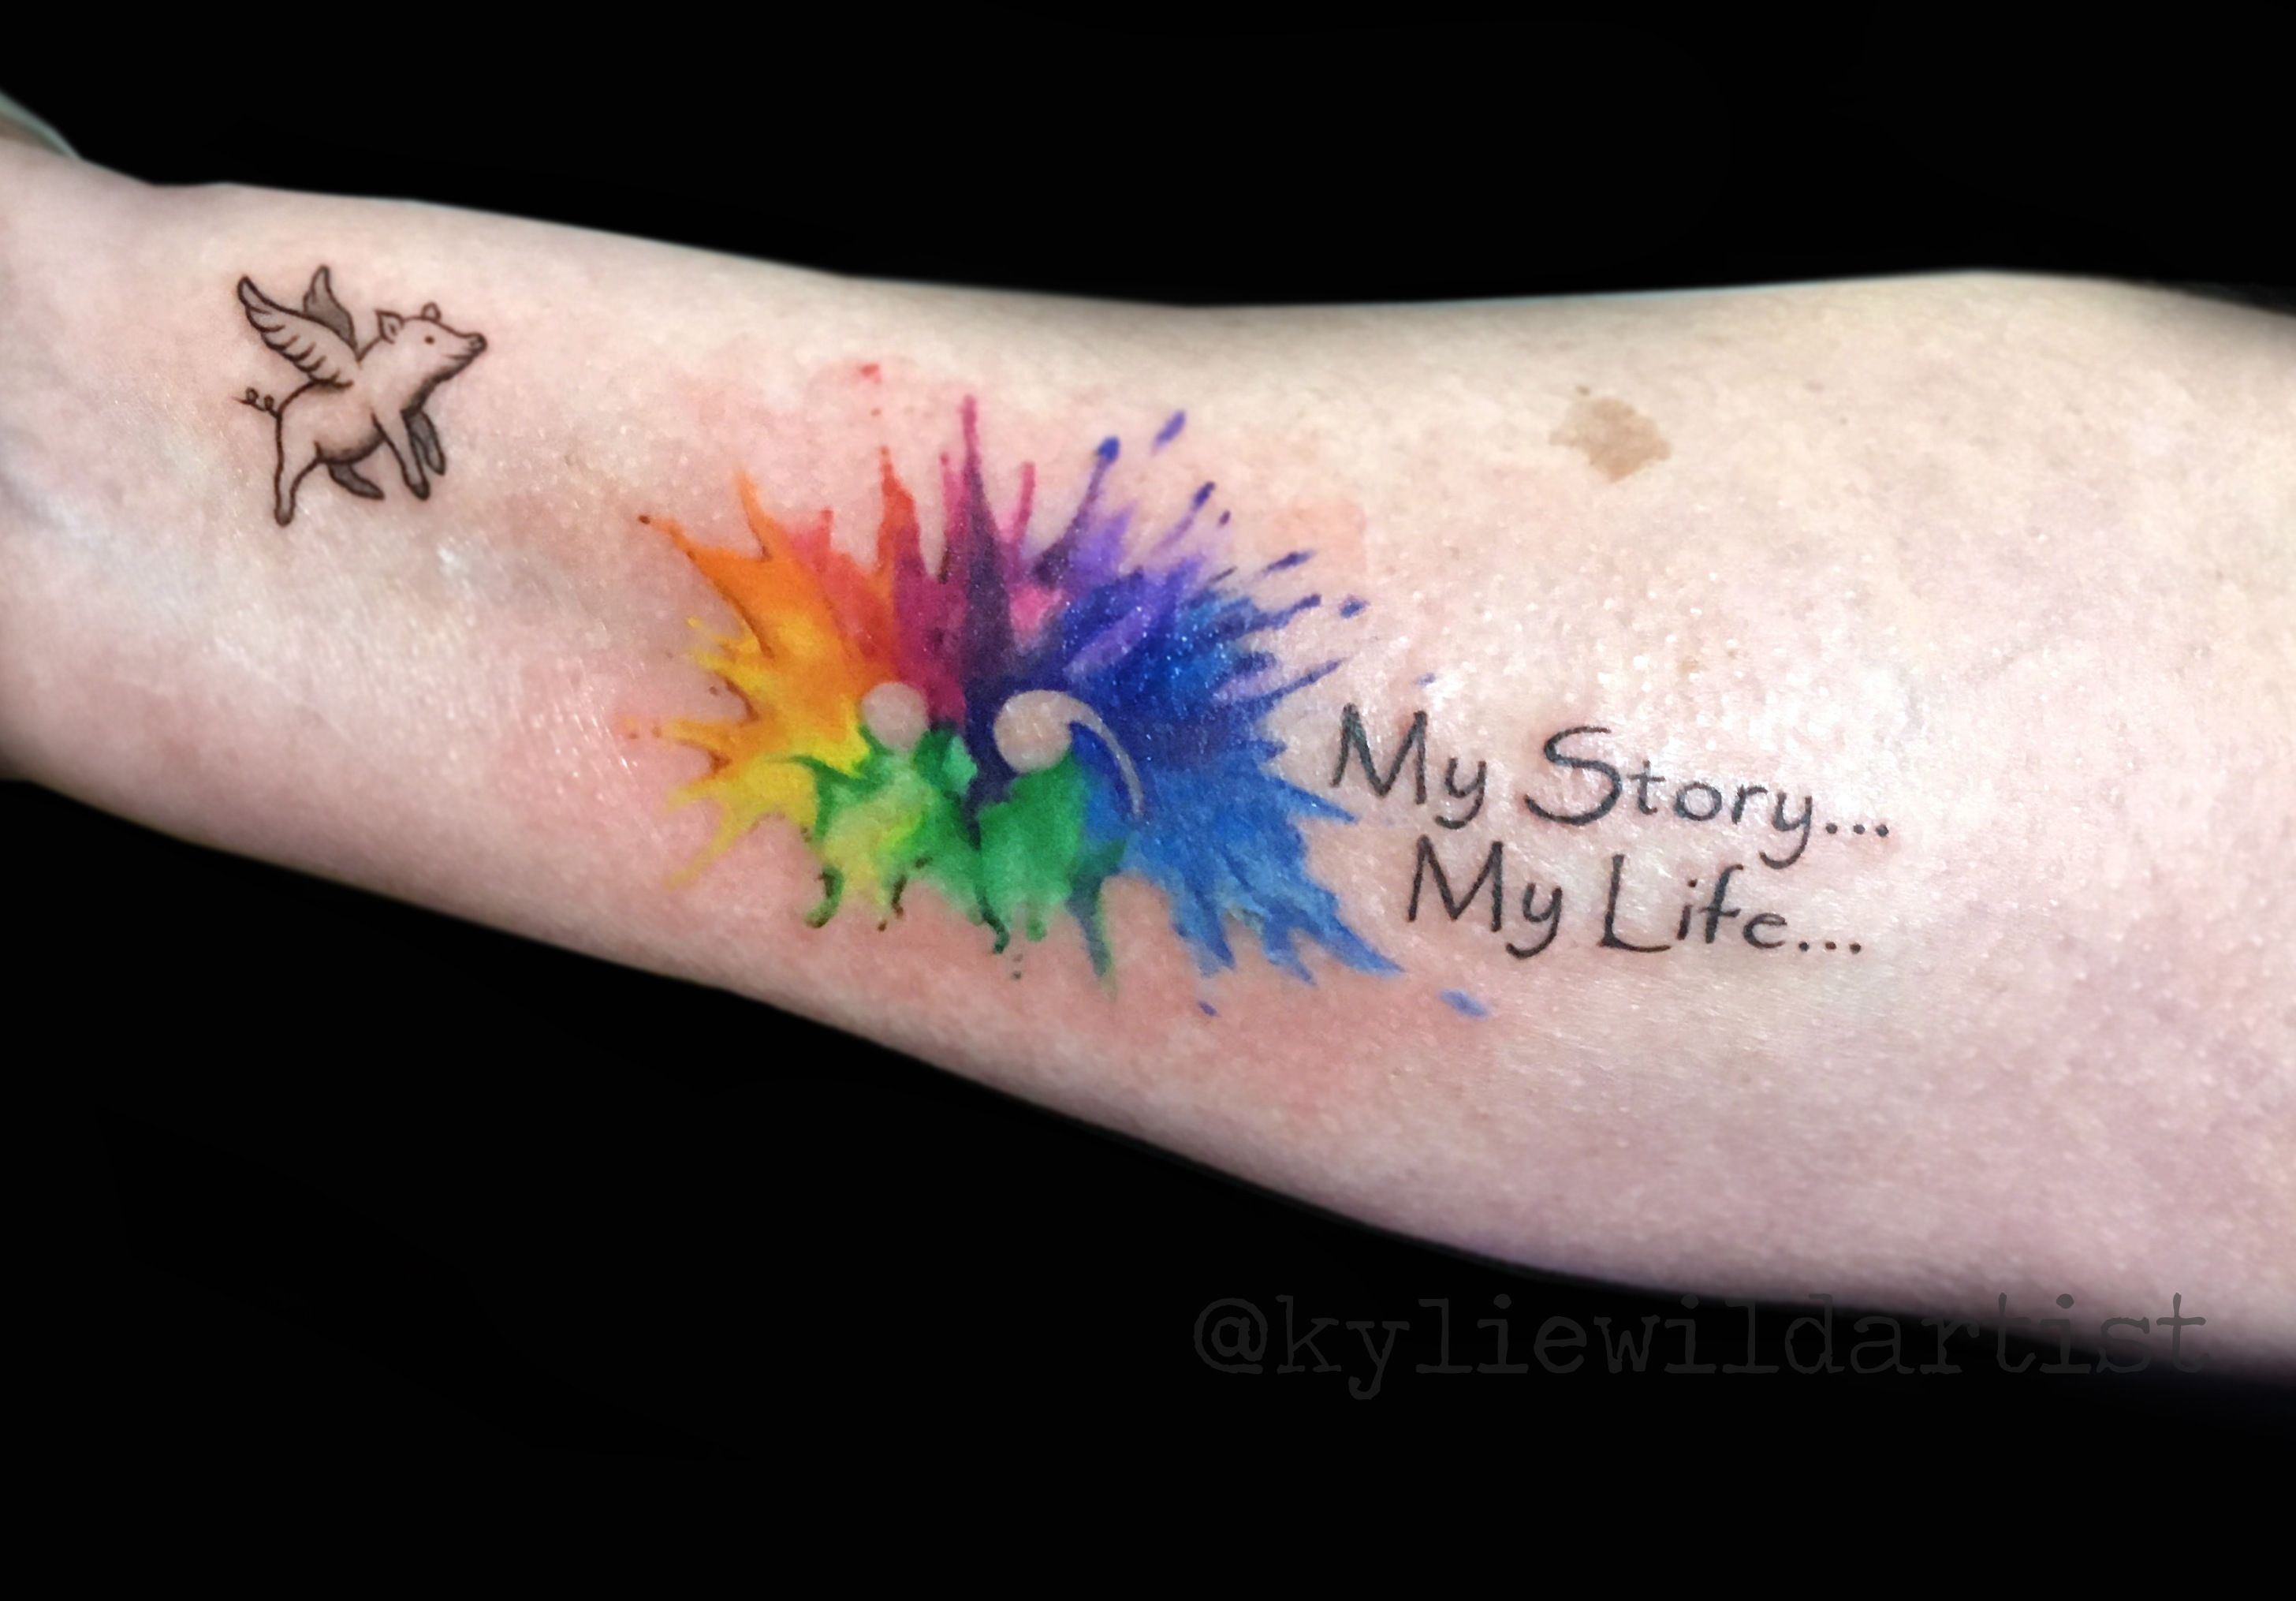 Semi Colon Project Rainbow Watercolor Splash And A Little Flying Pig By Kylie Wild Heslop Tattoo Artist Www Rainbow Tattoos Pride Tattoo Tattoos For Daughters